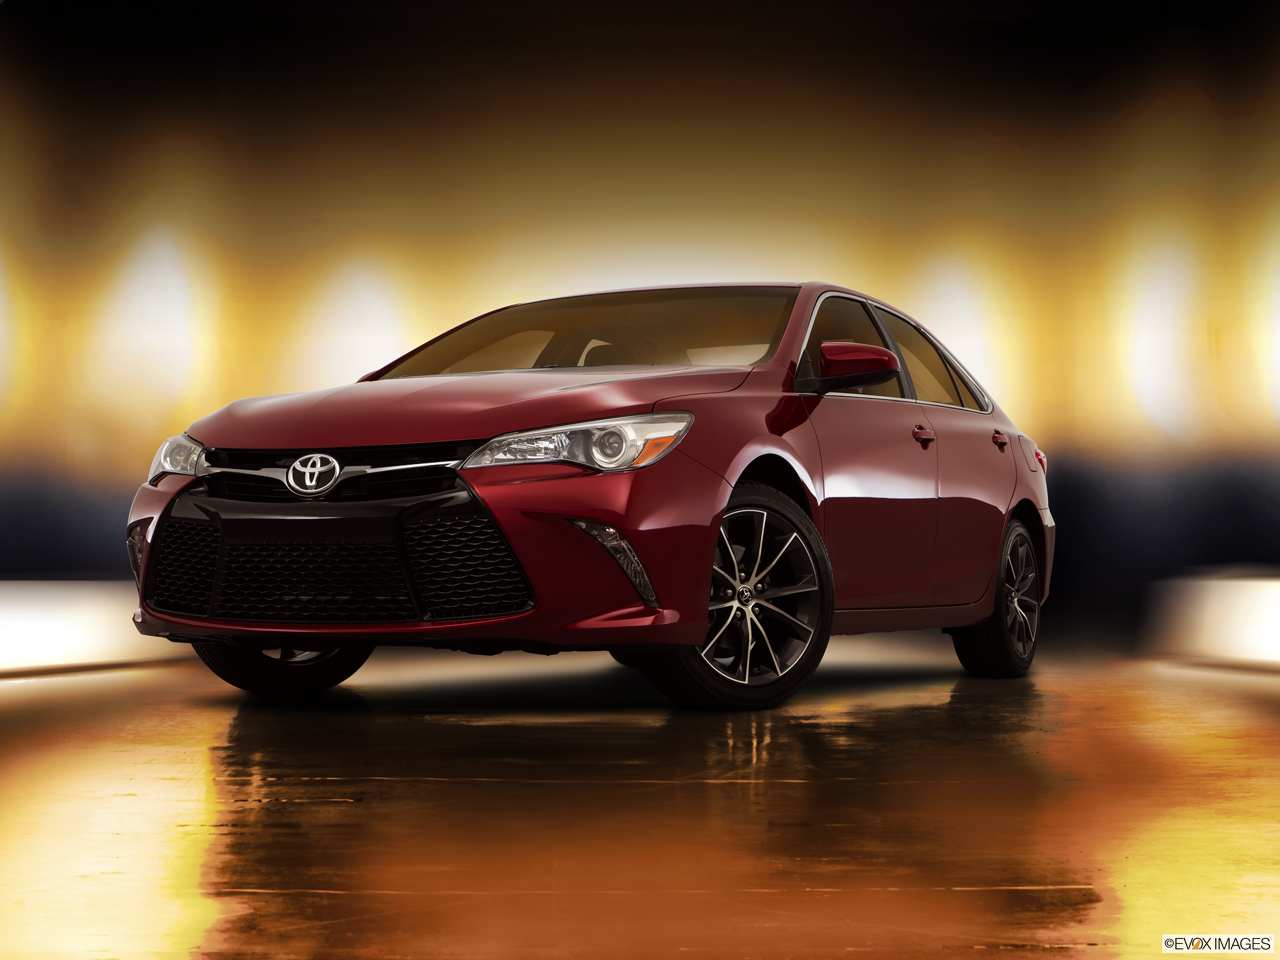 2017 toyota camry for sale near san diego toyota of el cajon. Black Bedroom Furniture Sets. Home Design Ideas